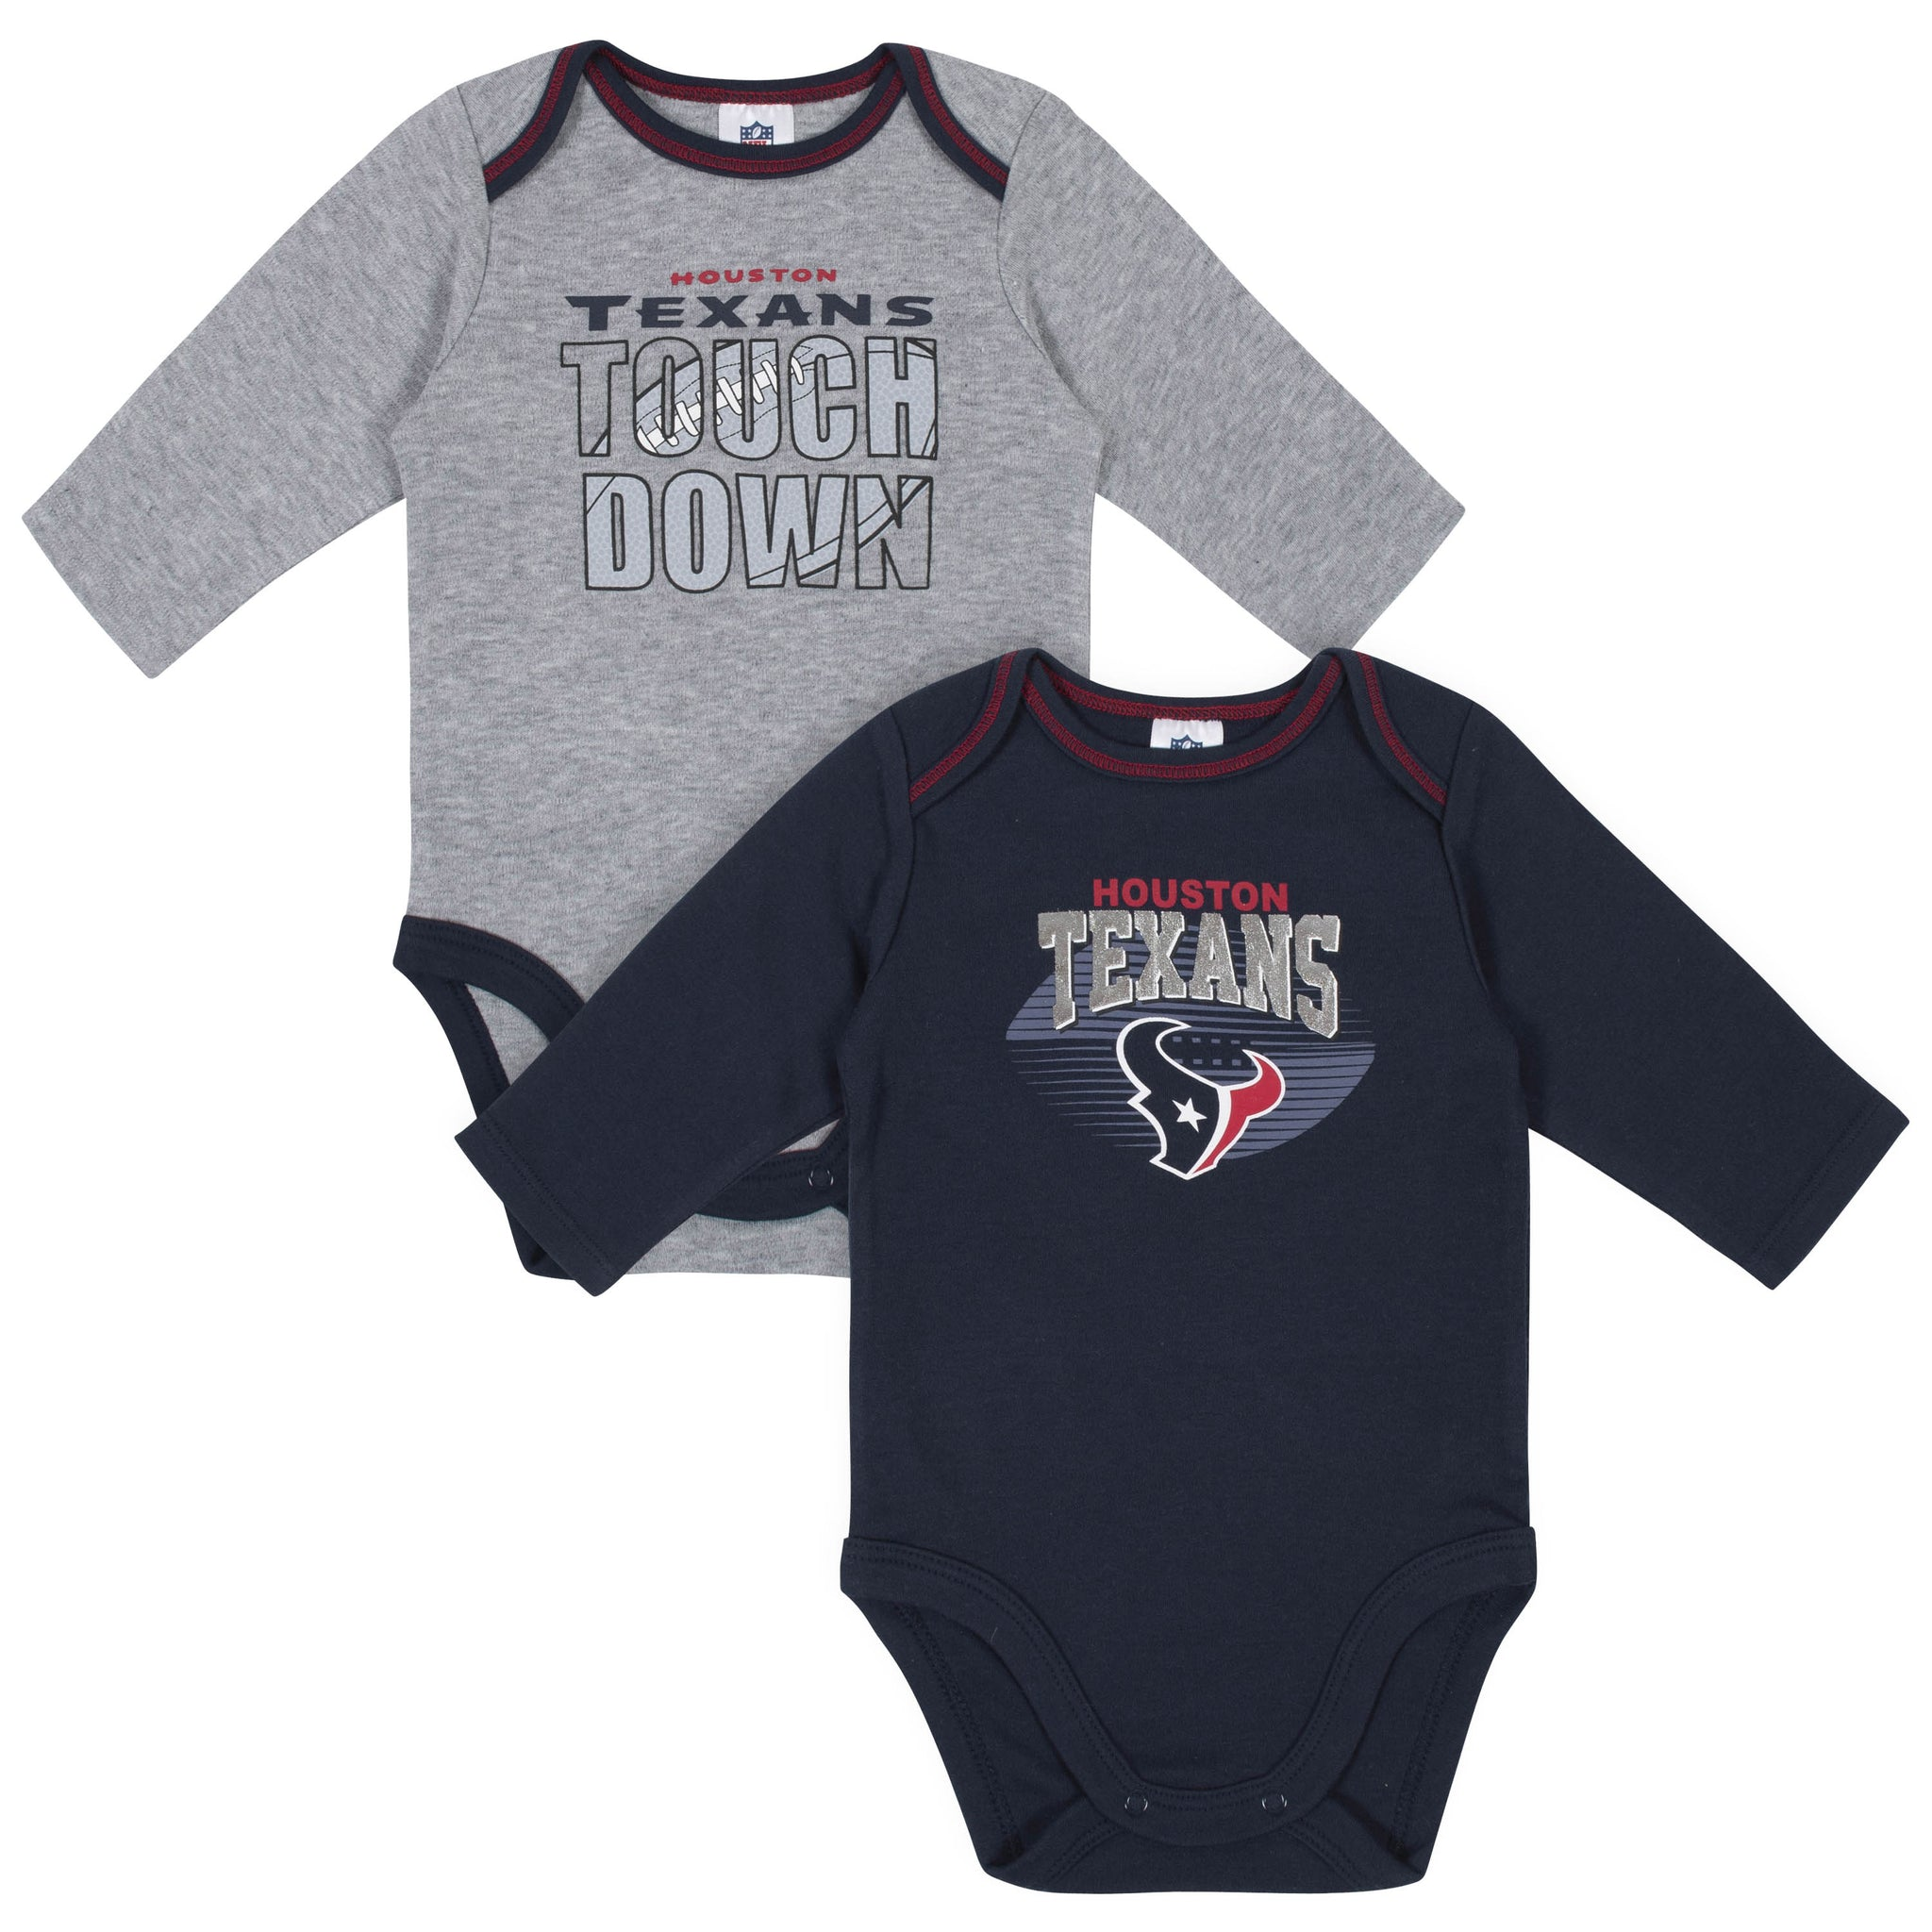 Baby Boys Houston Texans Long Sleeve Bodysuit, 2-pack -Gerber Childrenswear